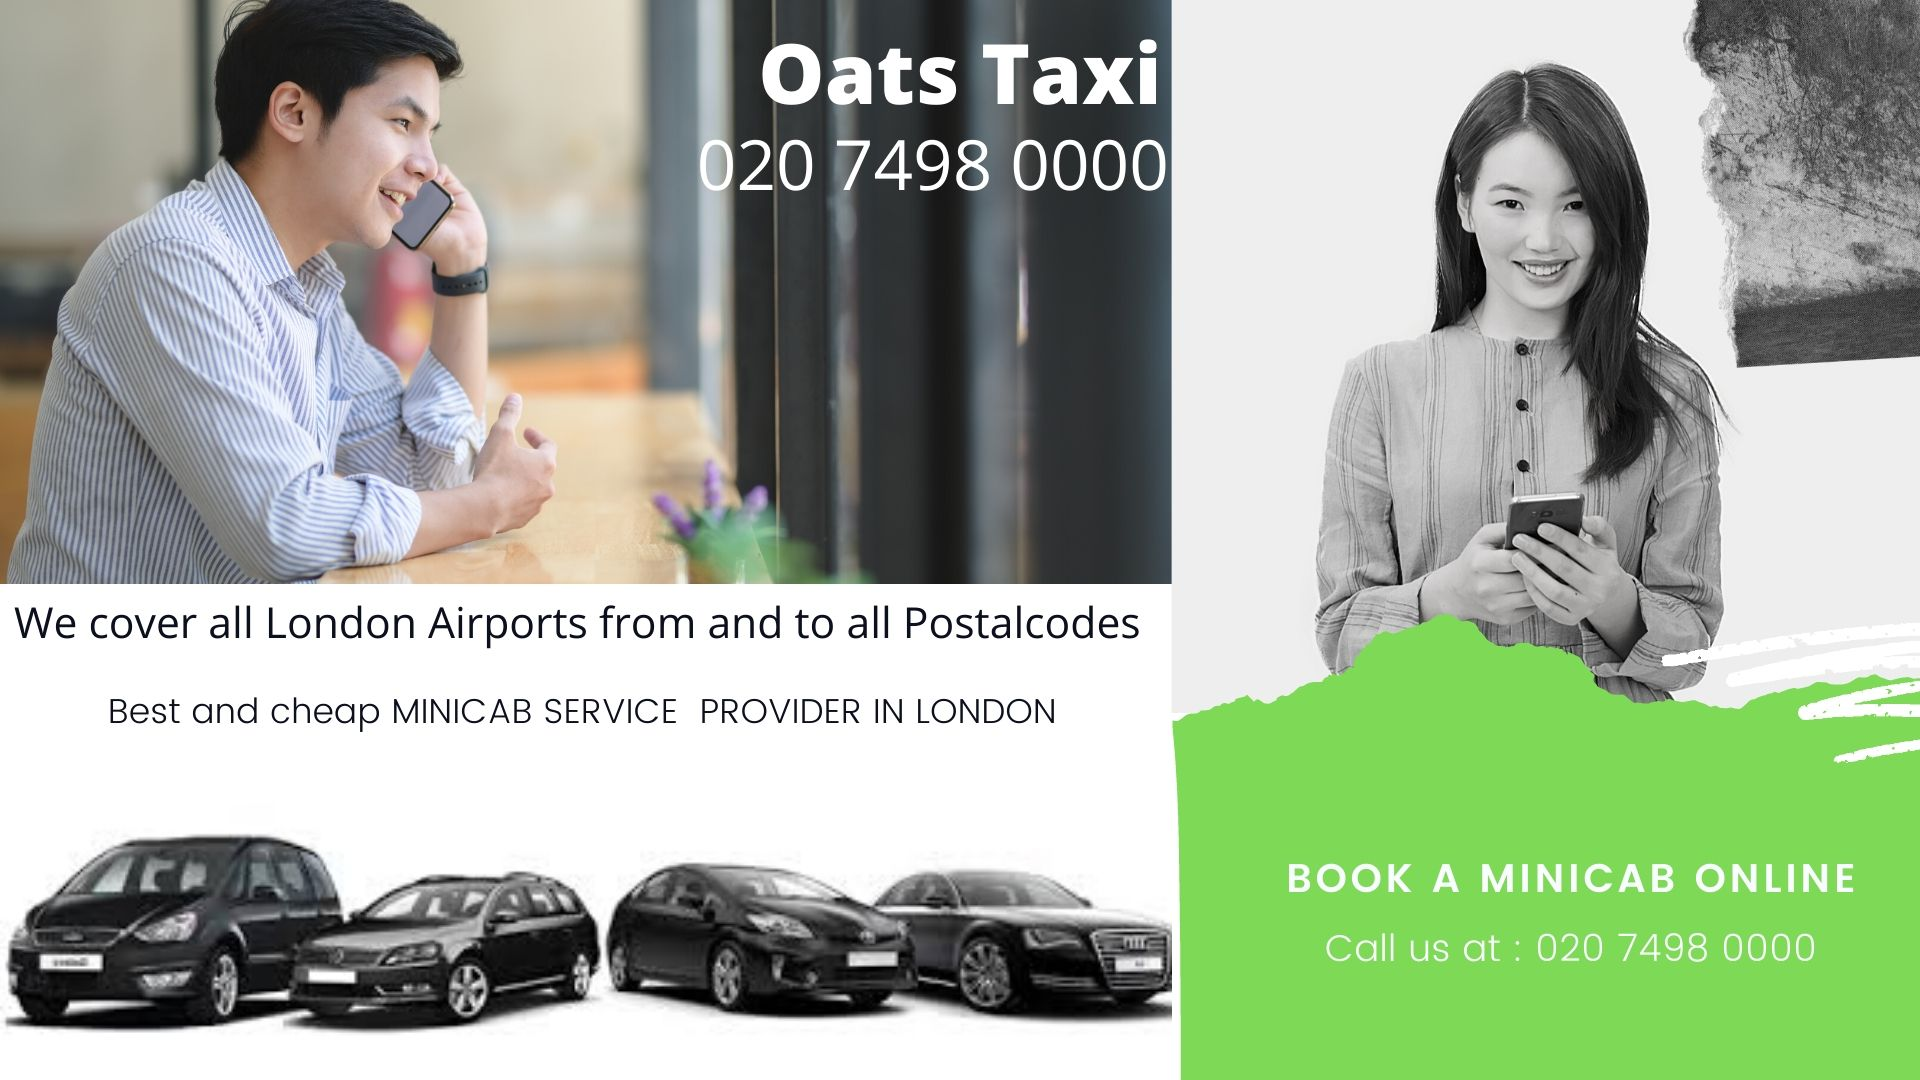 Minicab Office Near AMIES STREET, Battersea SW11, Minicab From Battersea SW11 To Gatwick Airport